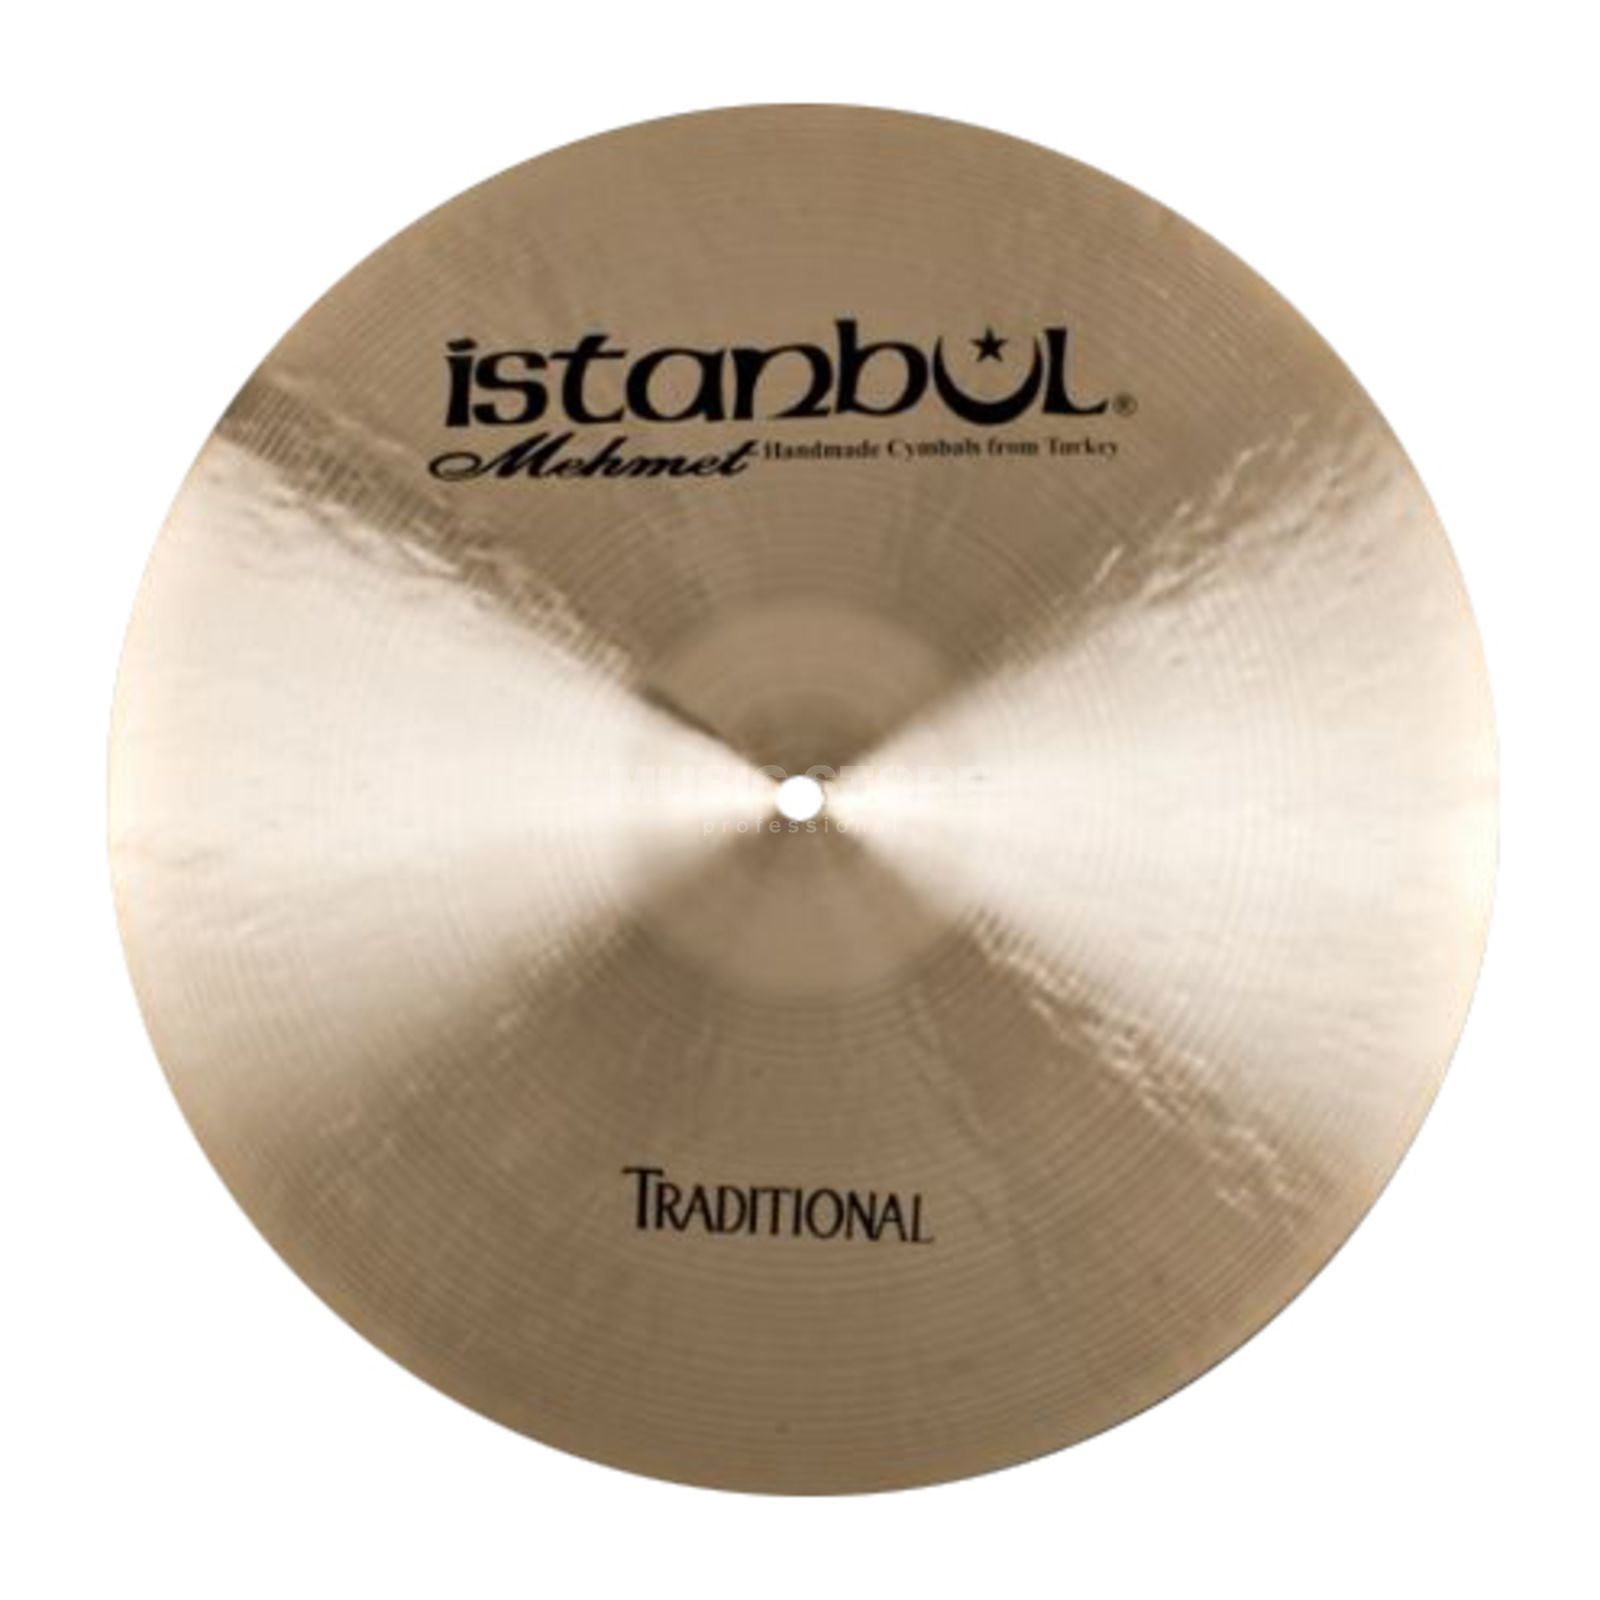 "Istanbul Traditional Dark Crash 18"", CD19 Produktbillede"